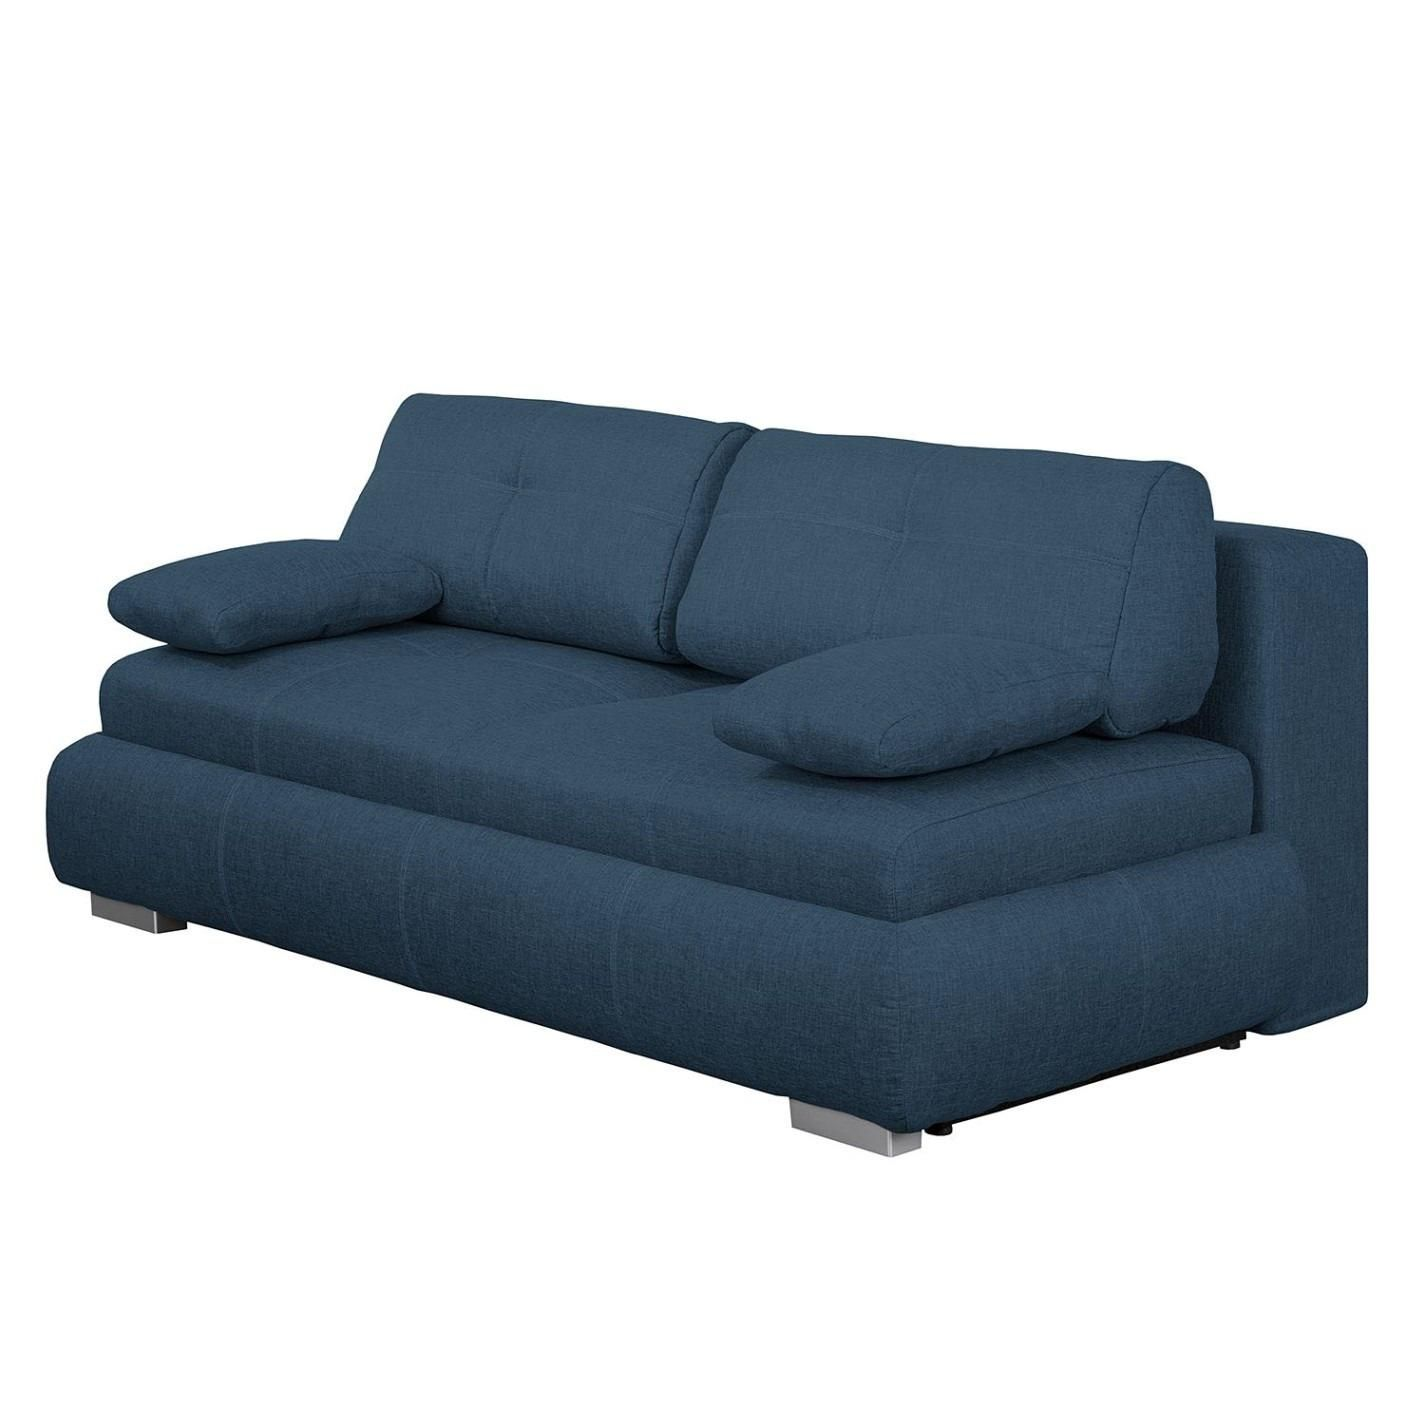 26 Neue Rent A Center Schlafsofa Sofa Couch Mobel Gunstige Sofas